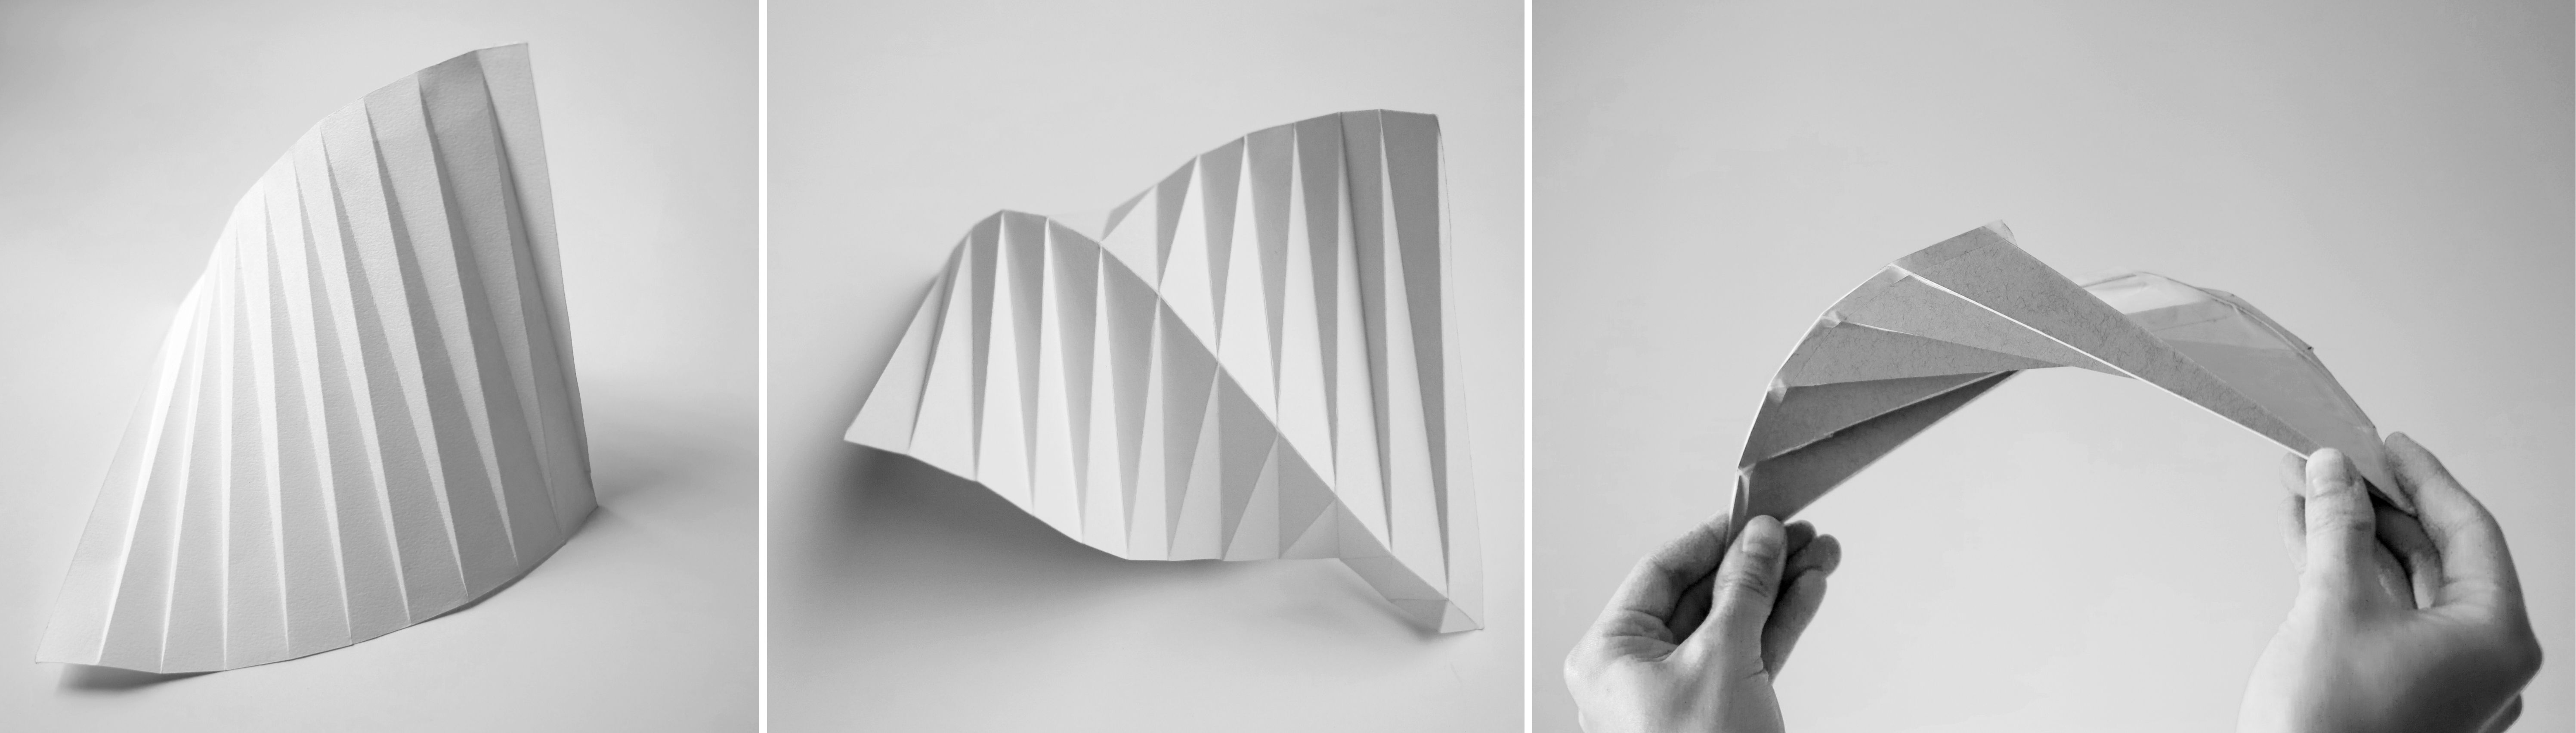 Paper Folding Structures Architecture Architecture